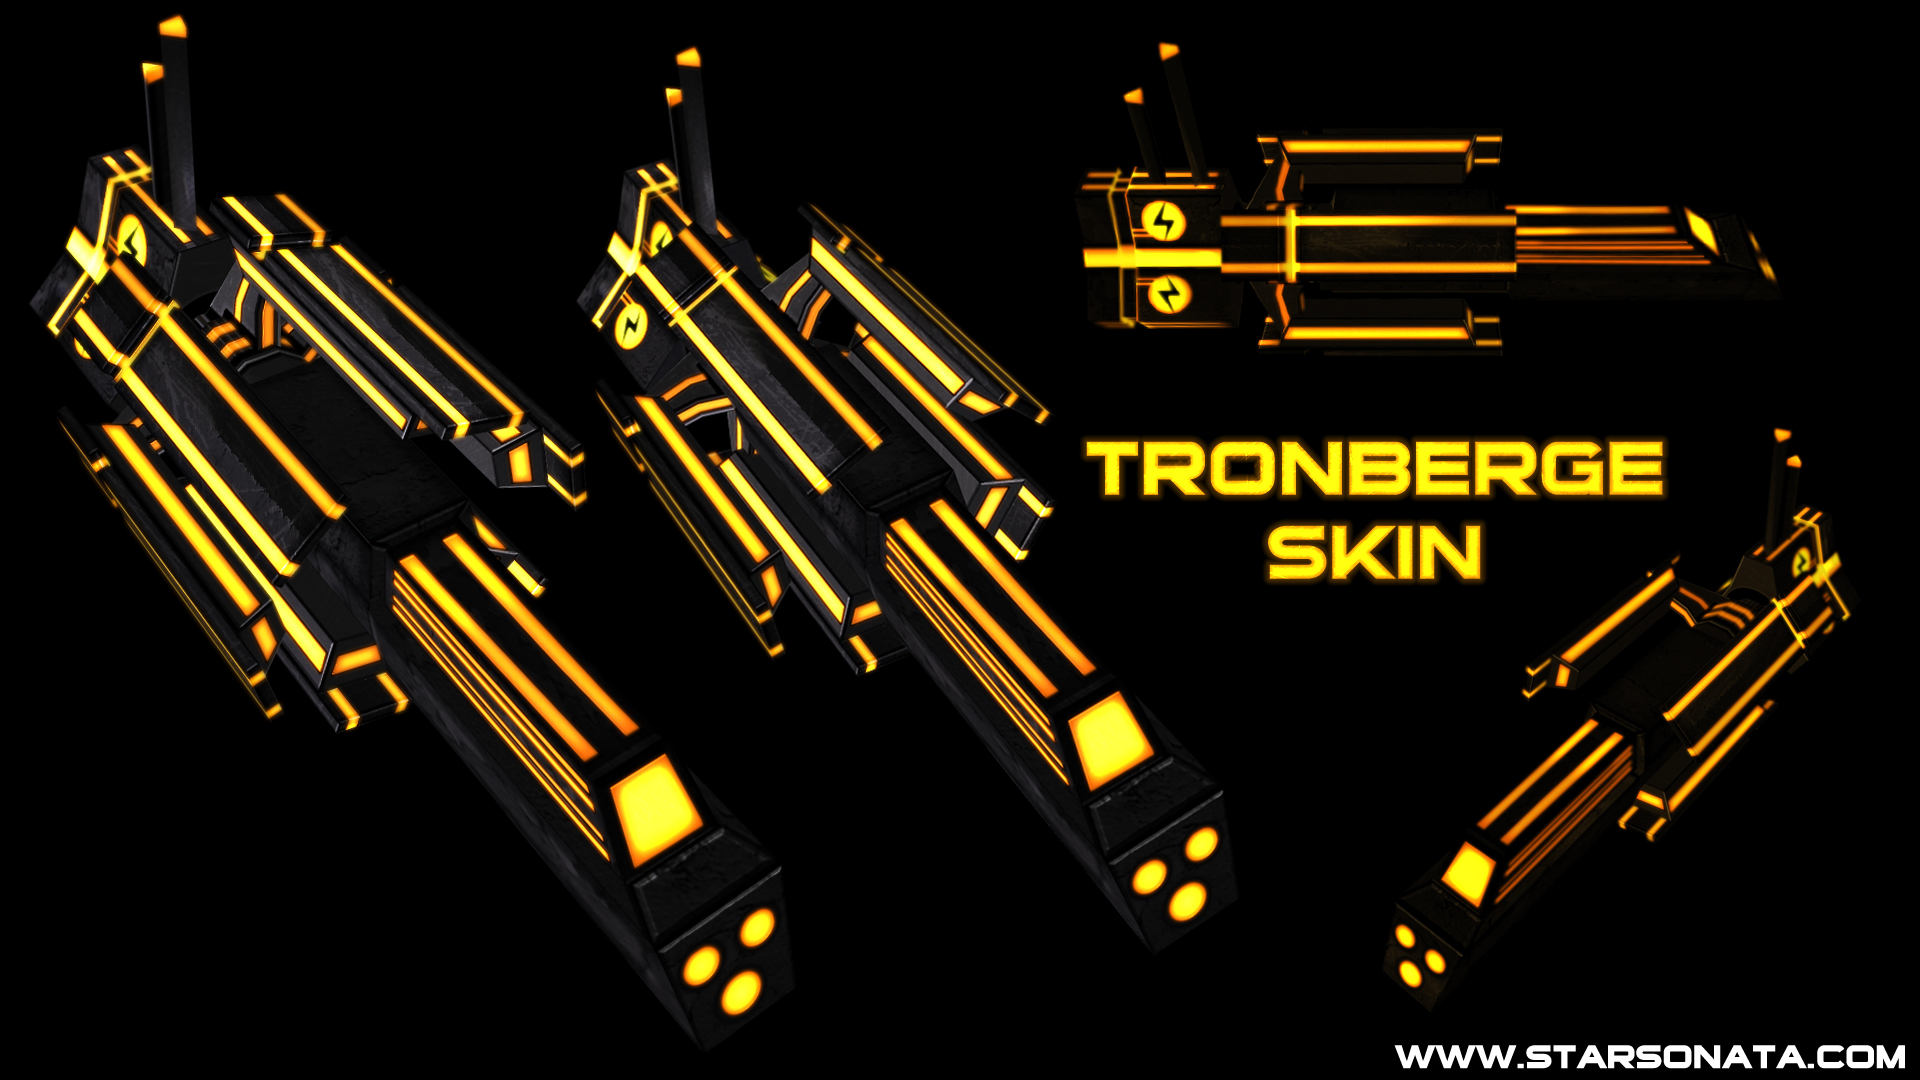 tronberge_poster_export